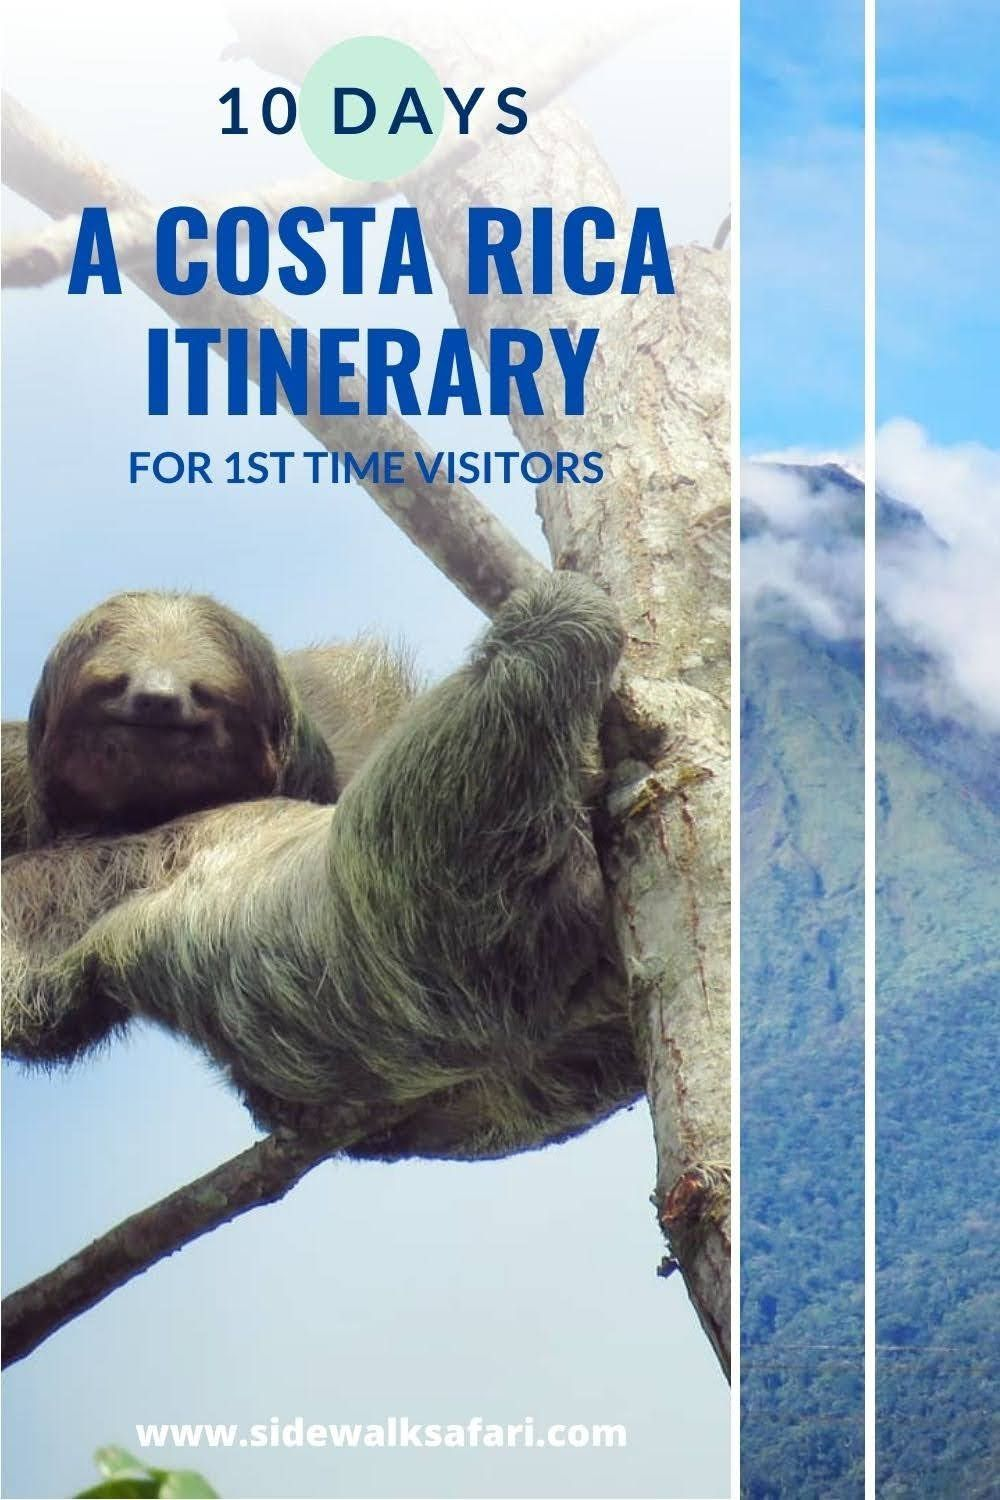 Looking to spend 10 days in Costa Rica? Travel Costa Rica with an itinerary for 1st time visitors. Explore a 10 day Costa Rica itinerary. Learn about things to do in La Fortuna, things to do in Monteverde Cloud Forest, and things to do in Manuel Antonio. Get Costa Rica travel tips on how to get around the country without renting a car.